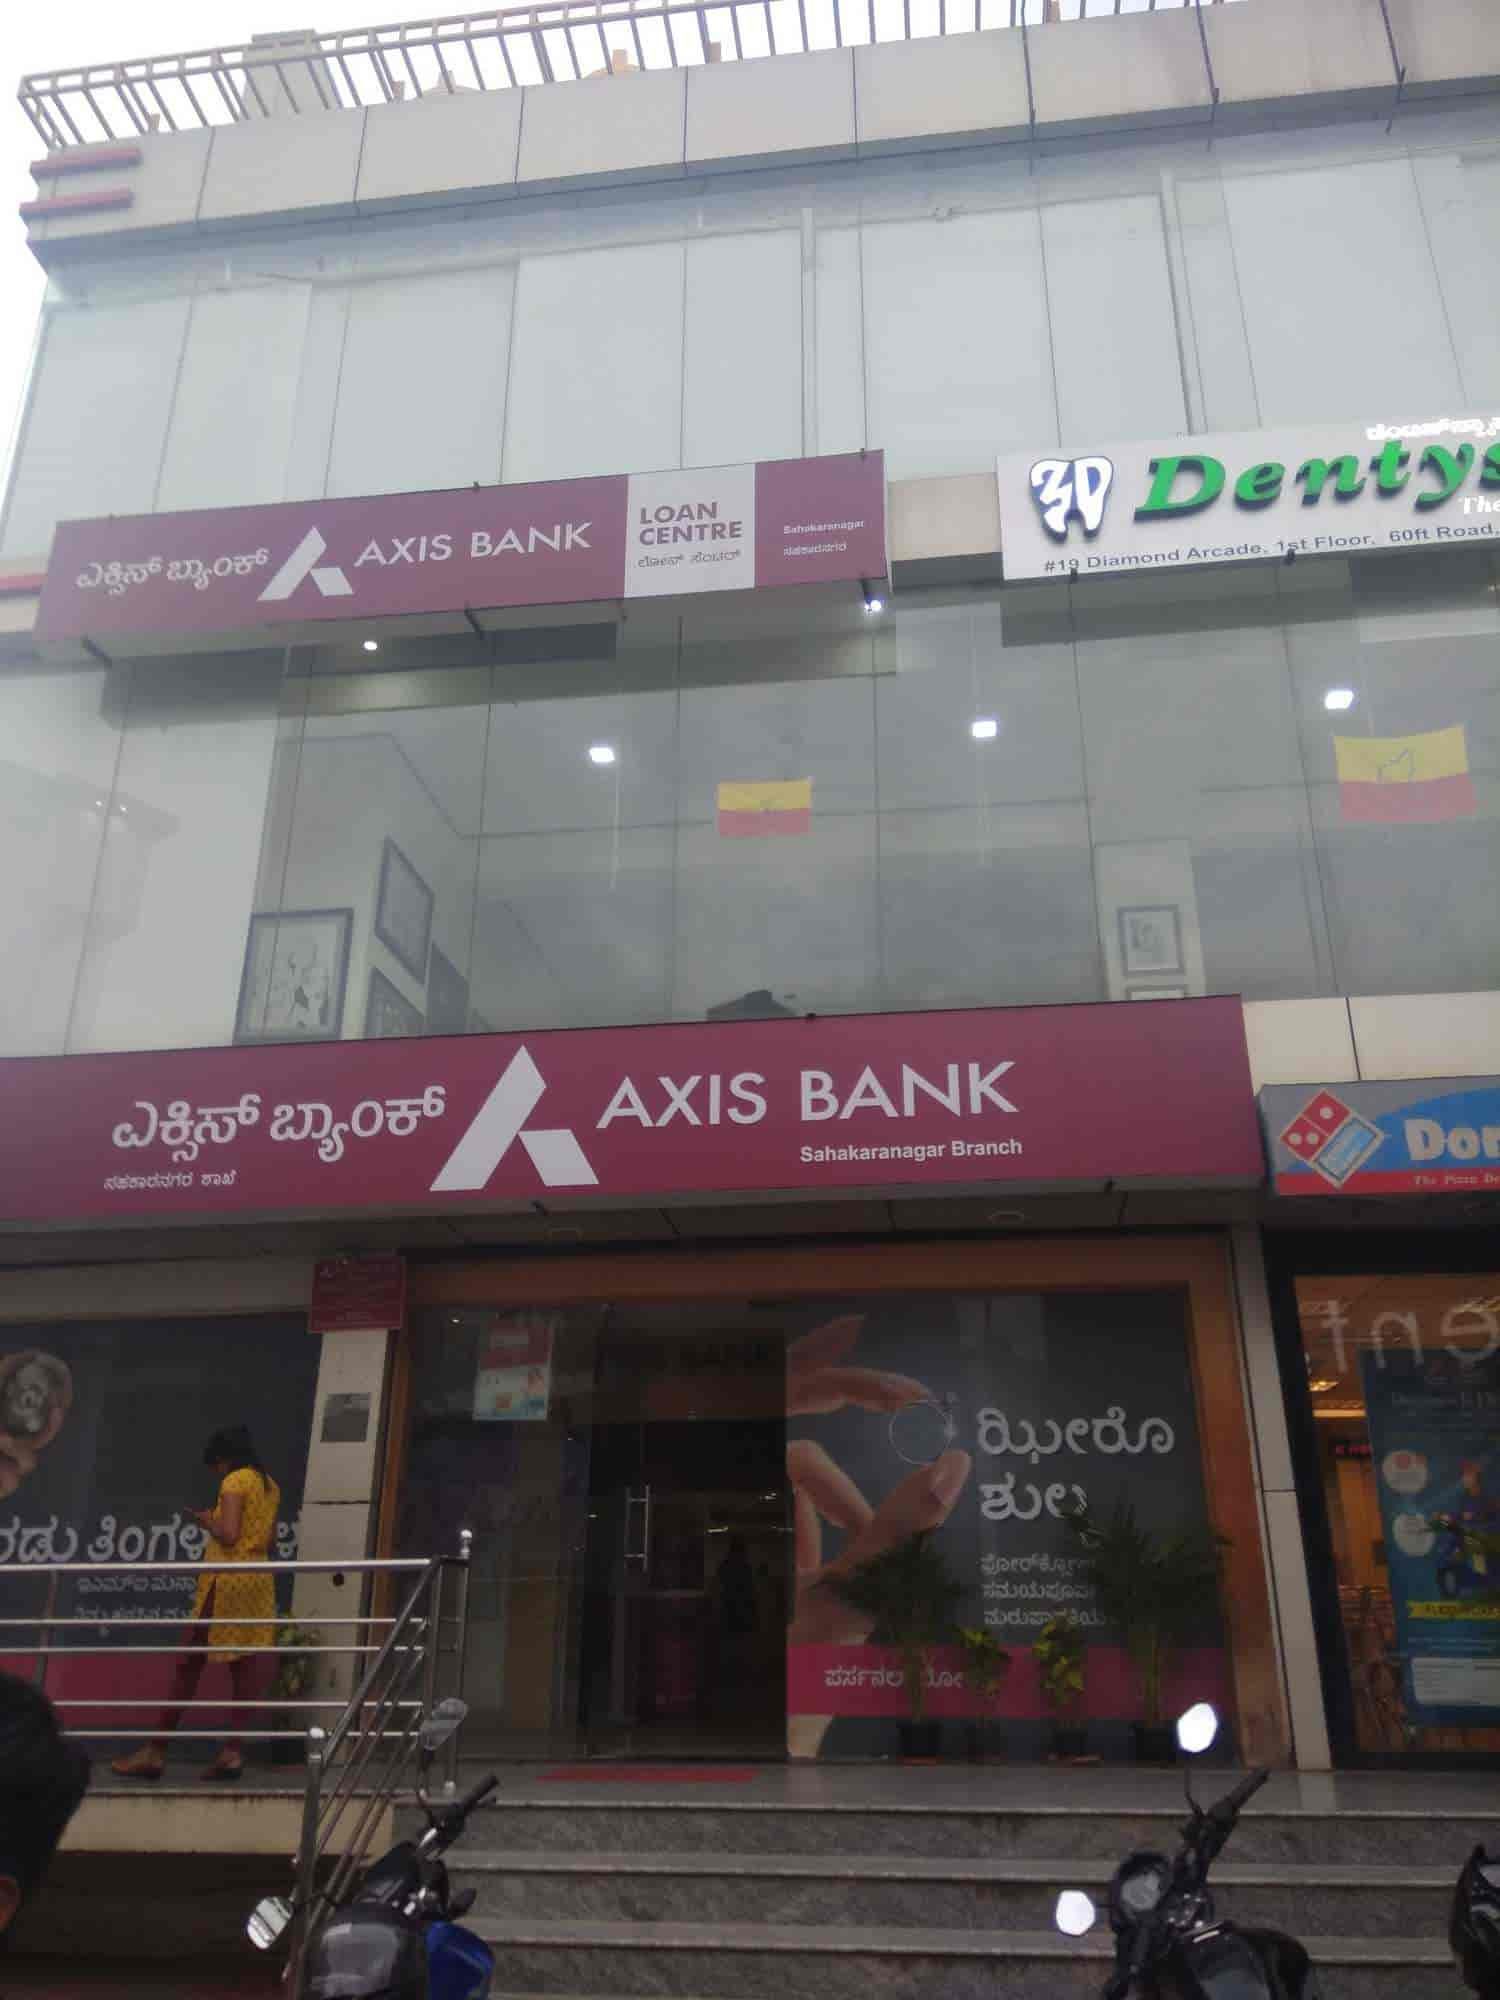 List Of Axis Bank Branches In Sahakara Nagar Axis Bank Branch Near Me Justdial